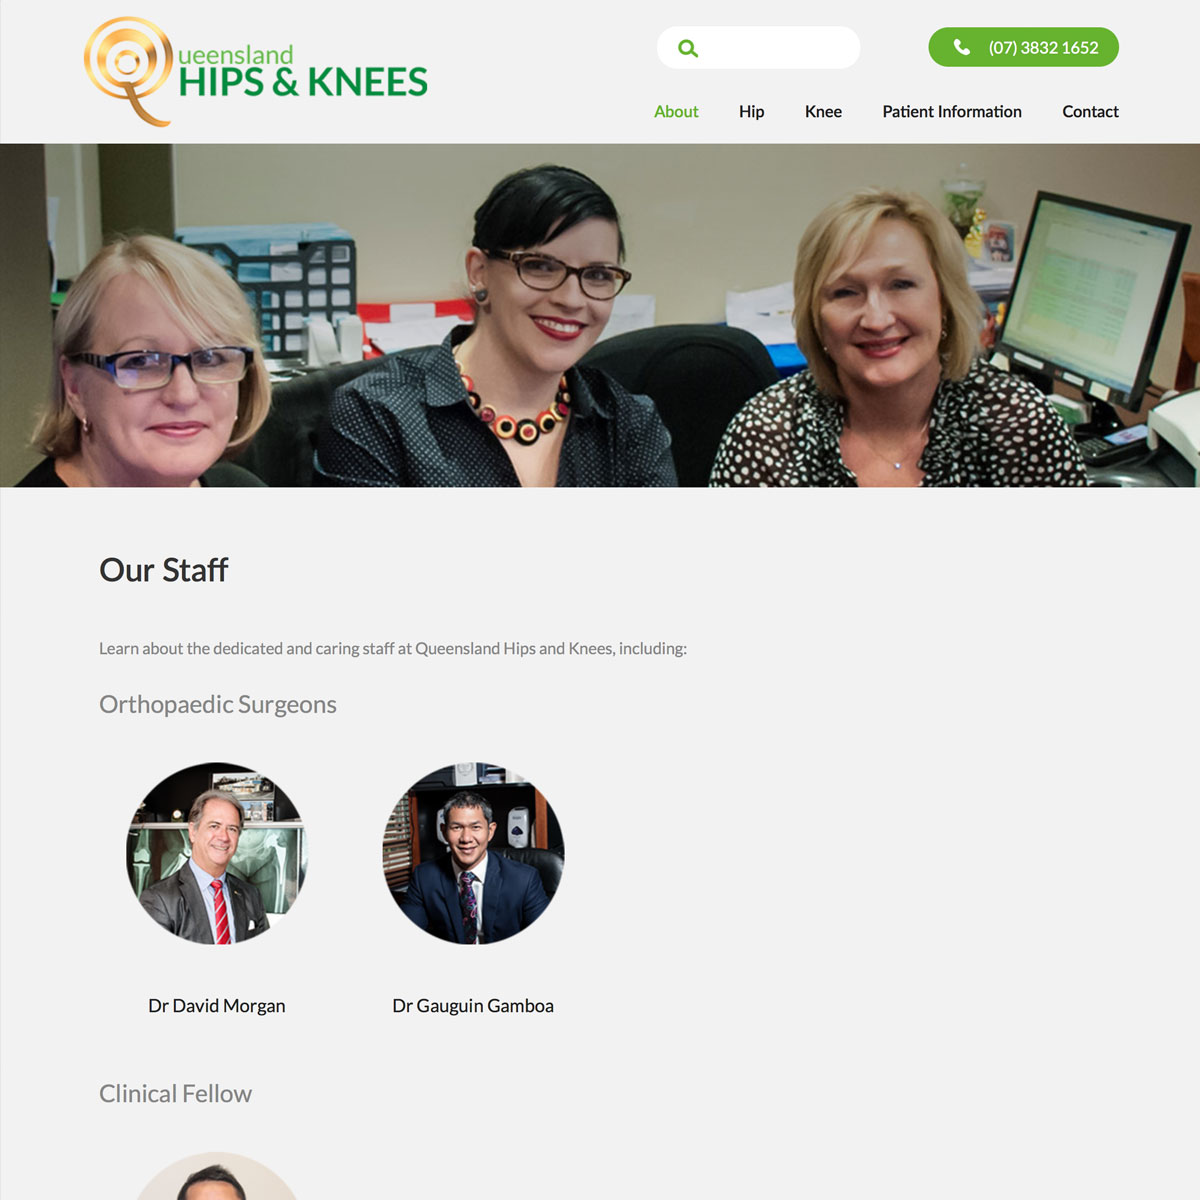 Queensland Hips and Knees - Our Staff